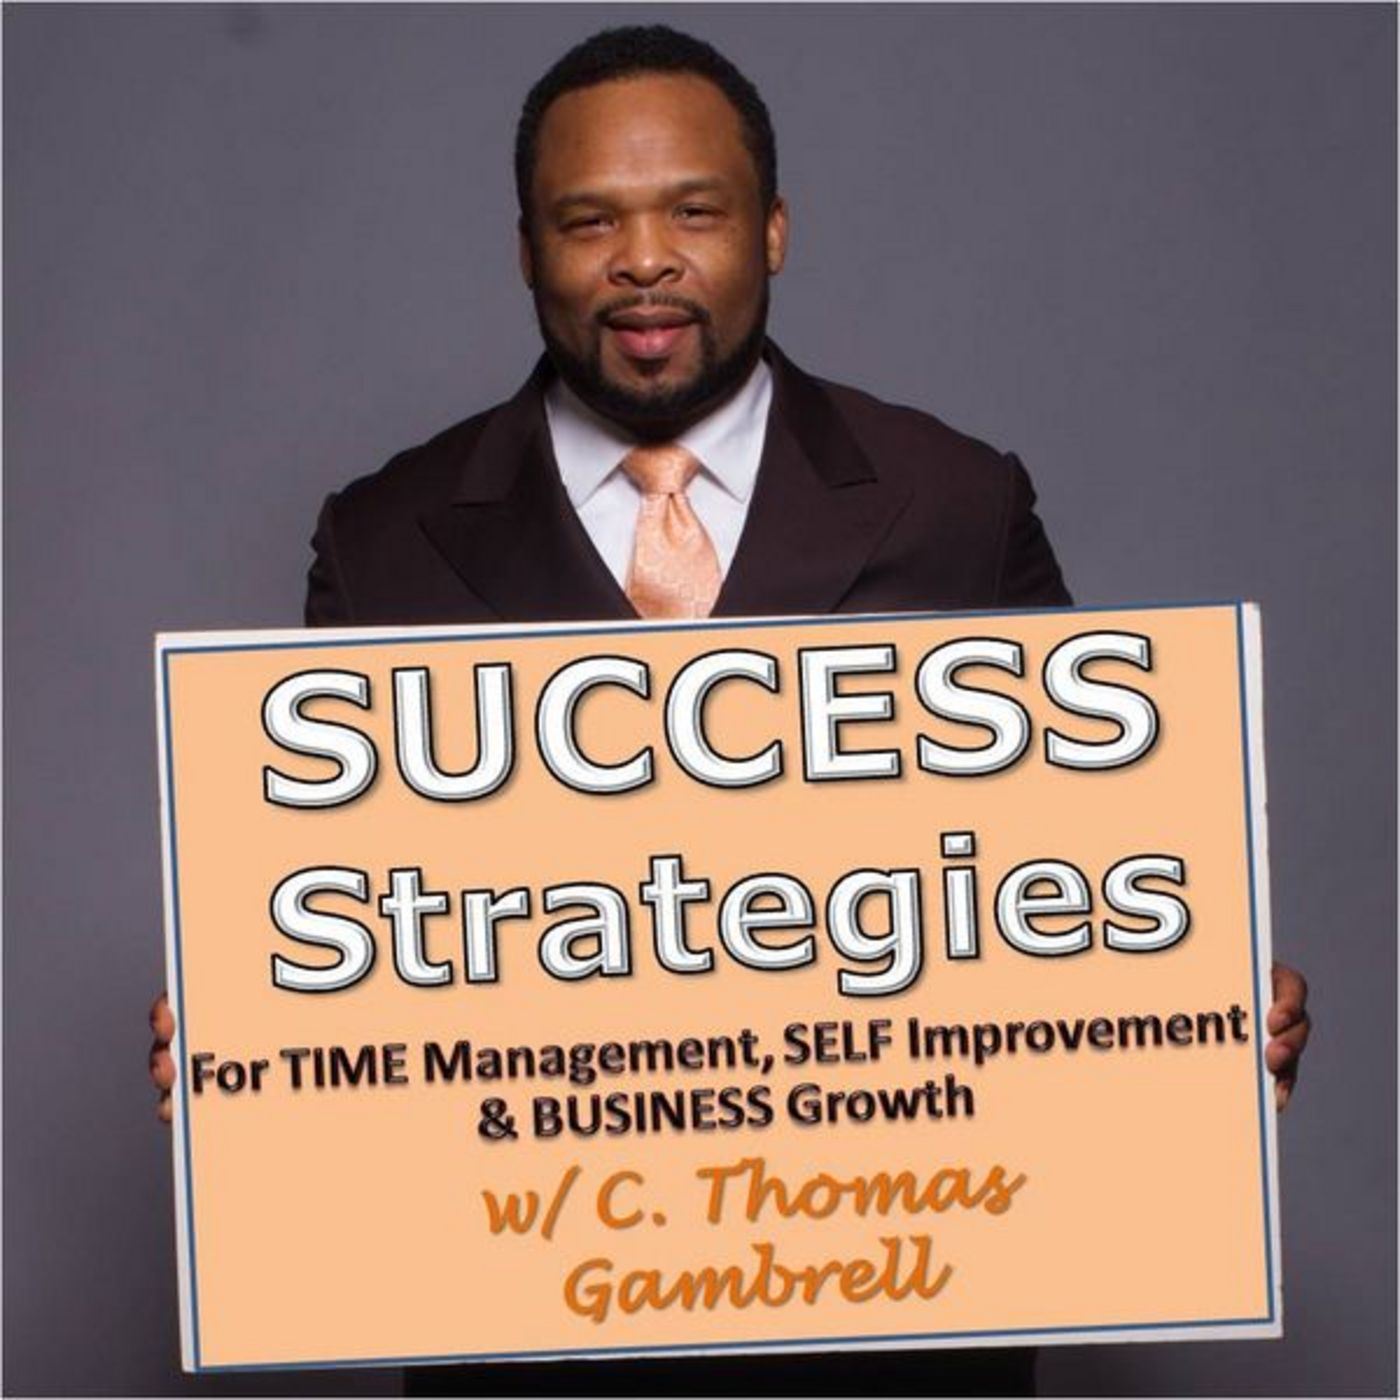 Success Strategies Podcast with C. Thomas Gambrell